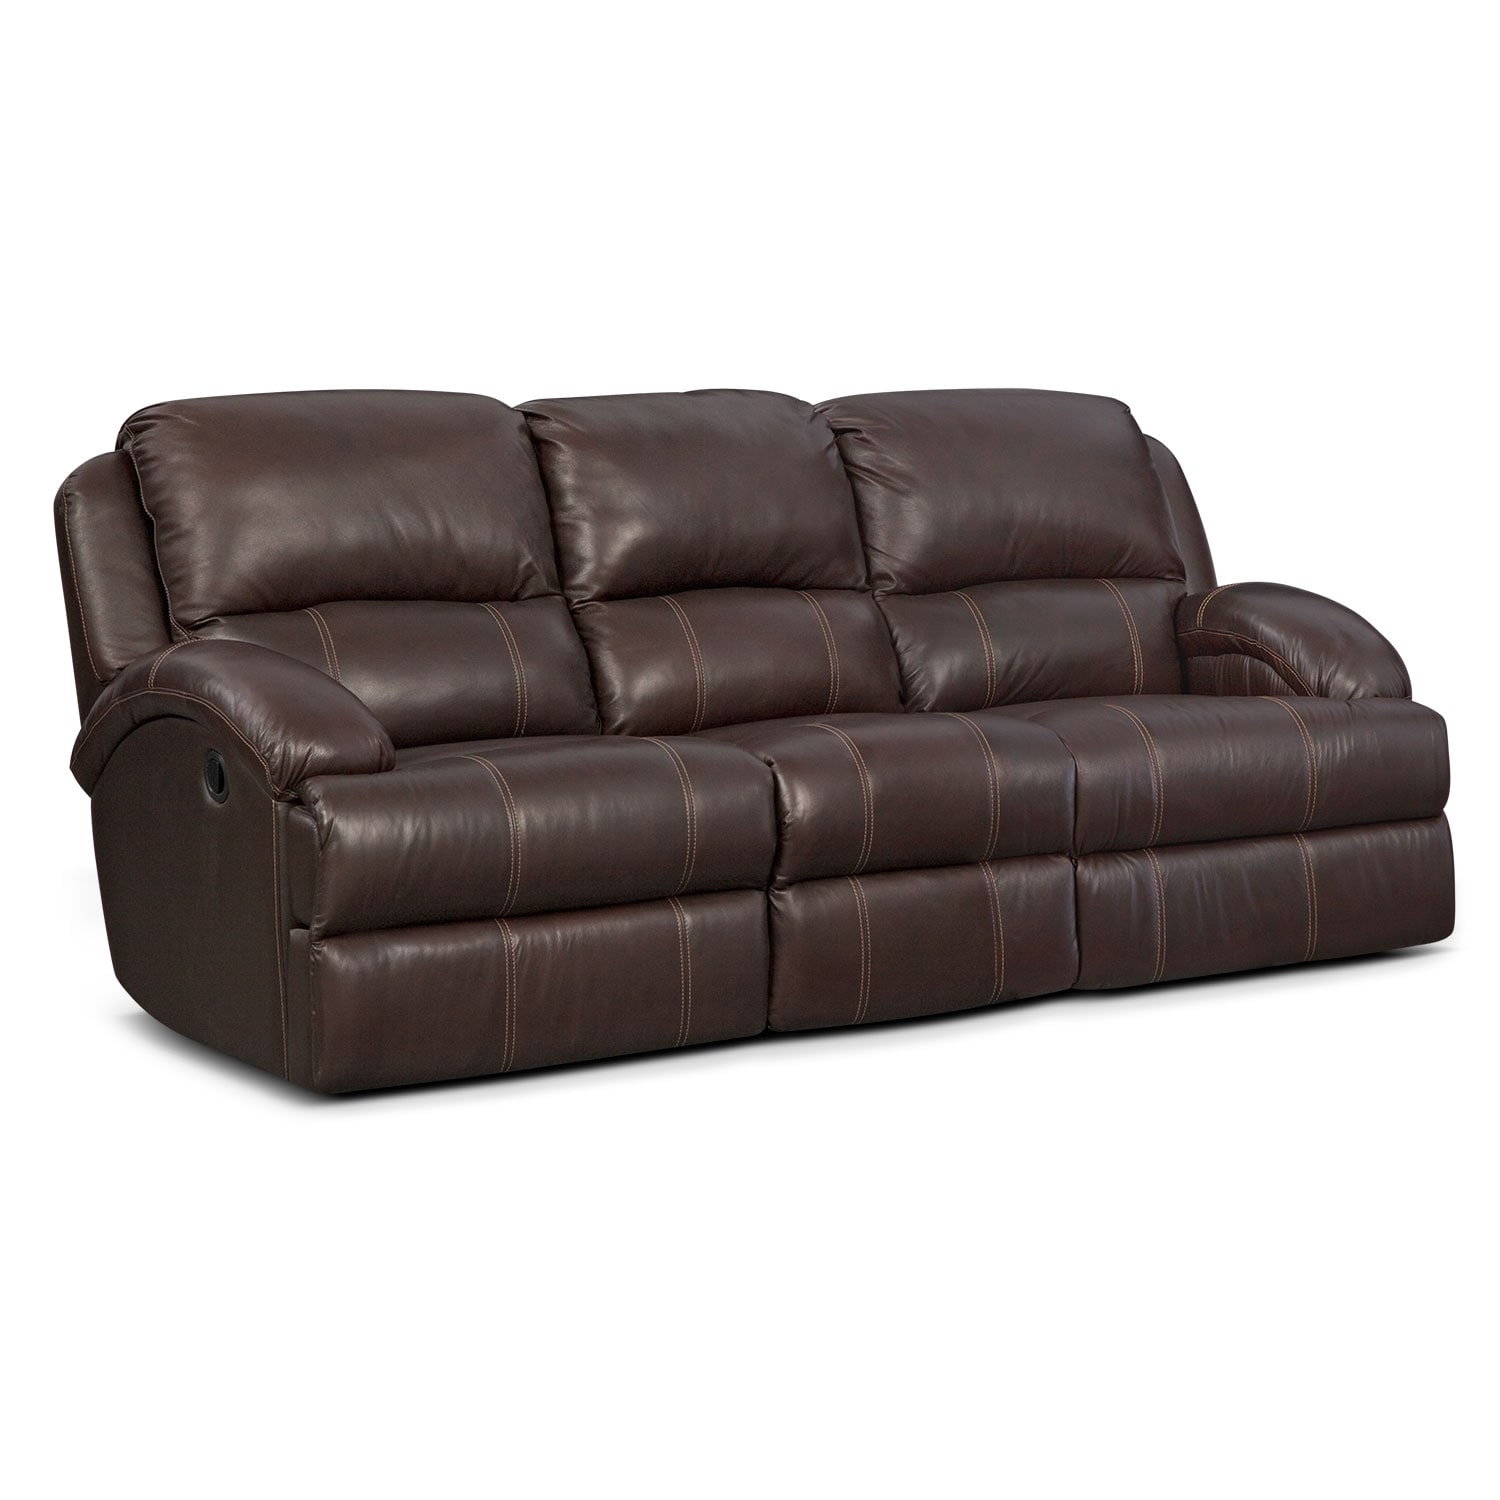 Dual Reclining Sofas Kane S Furniture Sofas And Couches Thesofa